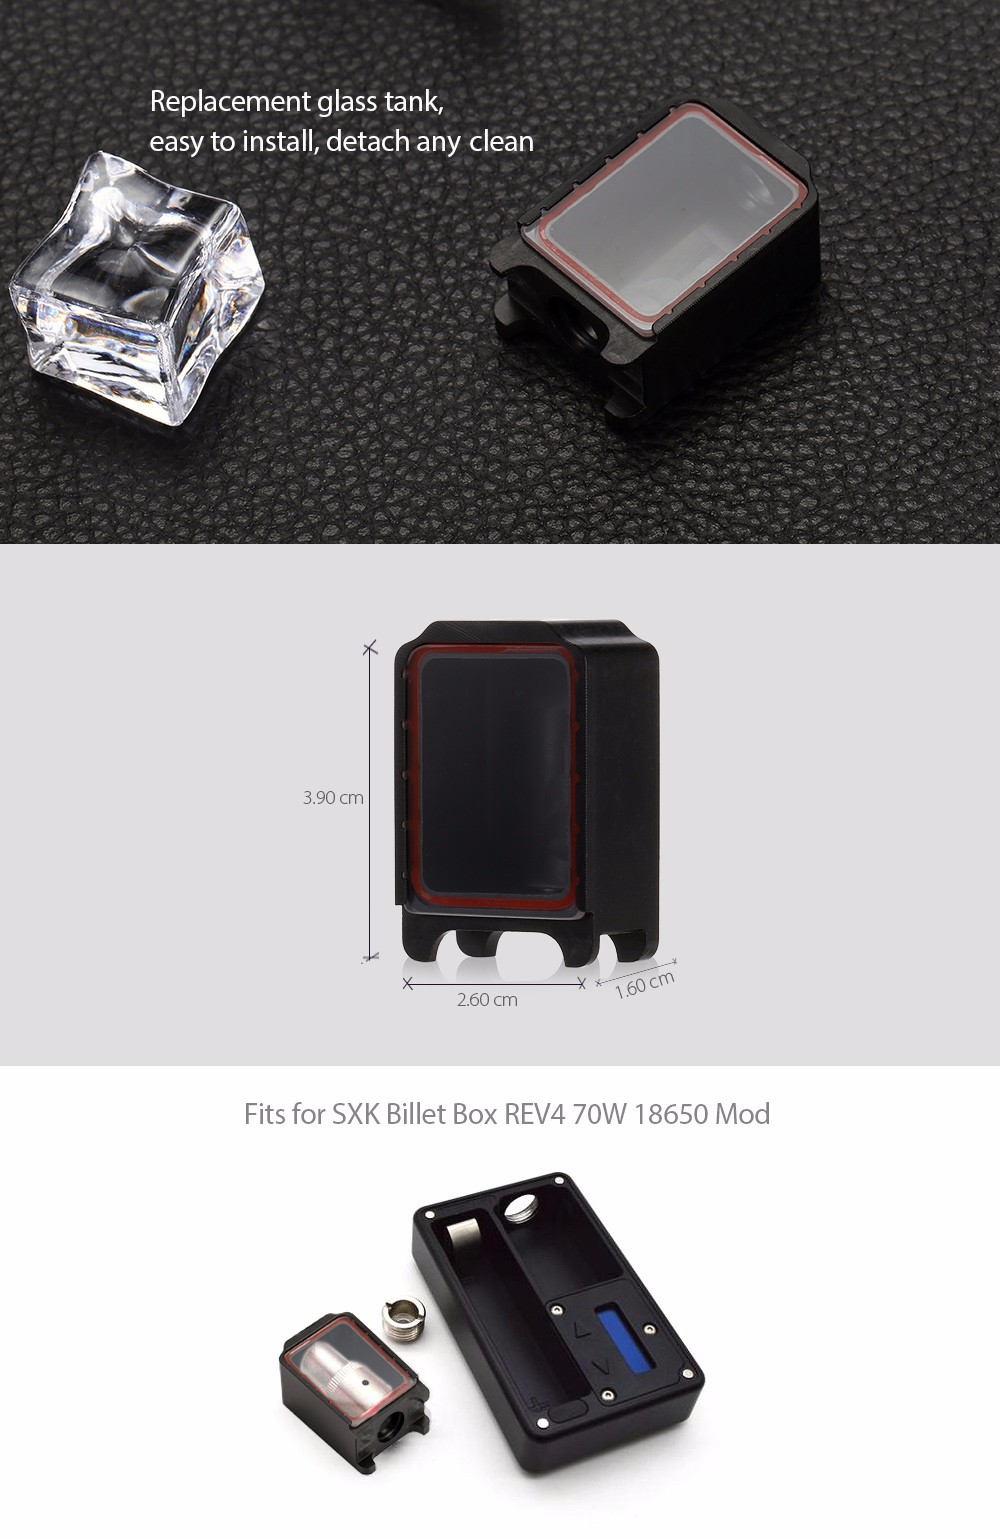 Tank for SXK REV4 70W 18650 Mod